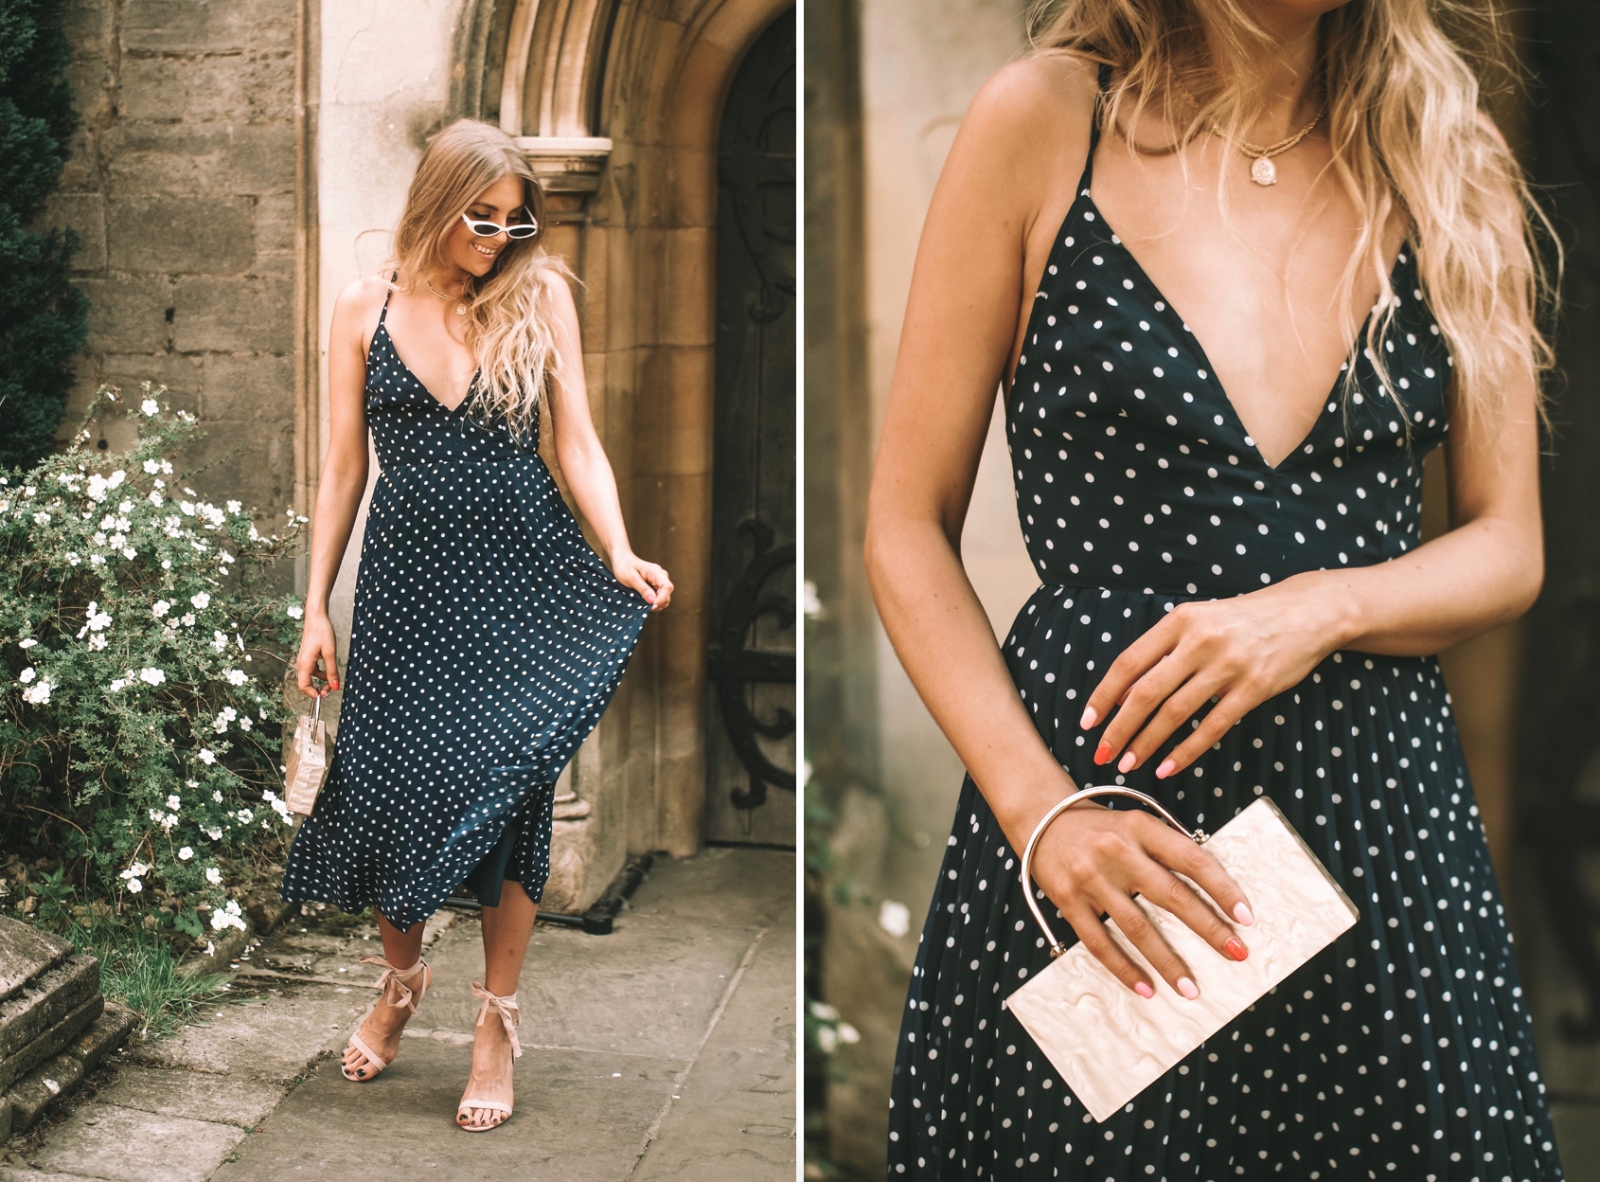 Asos Wedding Outfit - Polkadot Dress